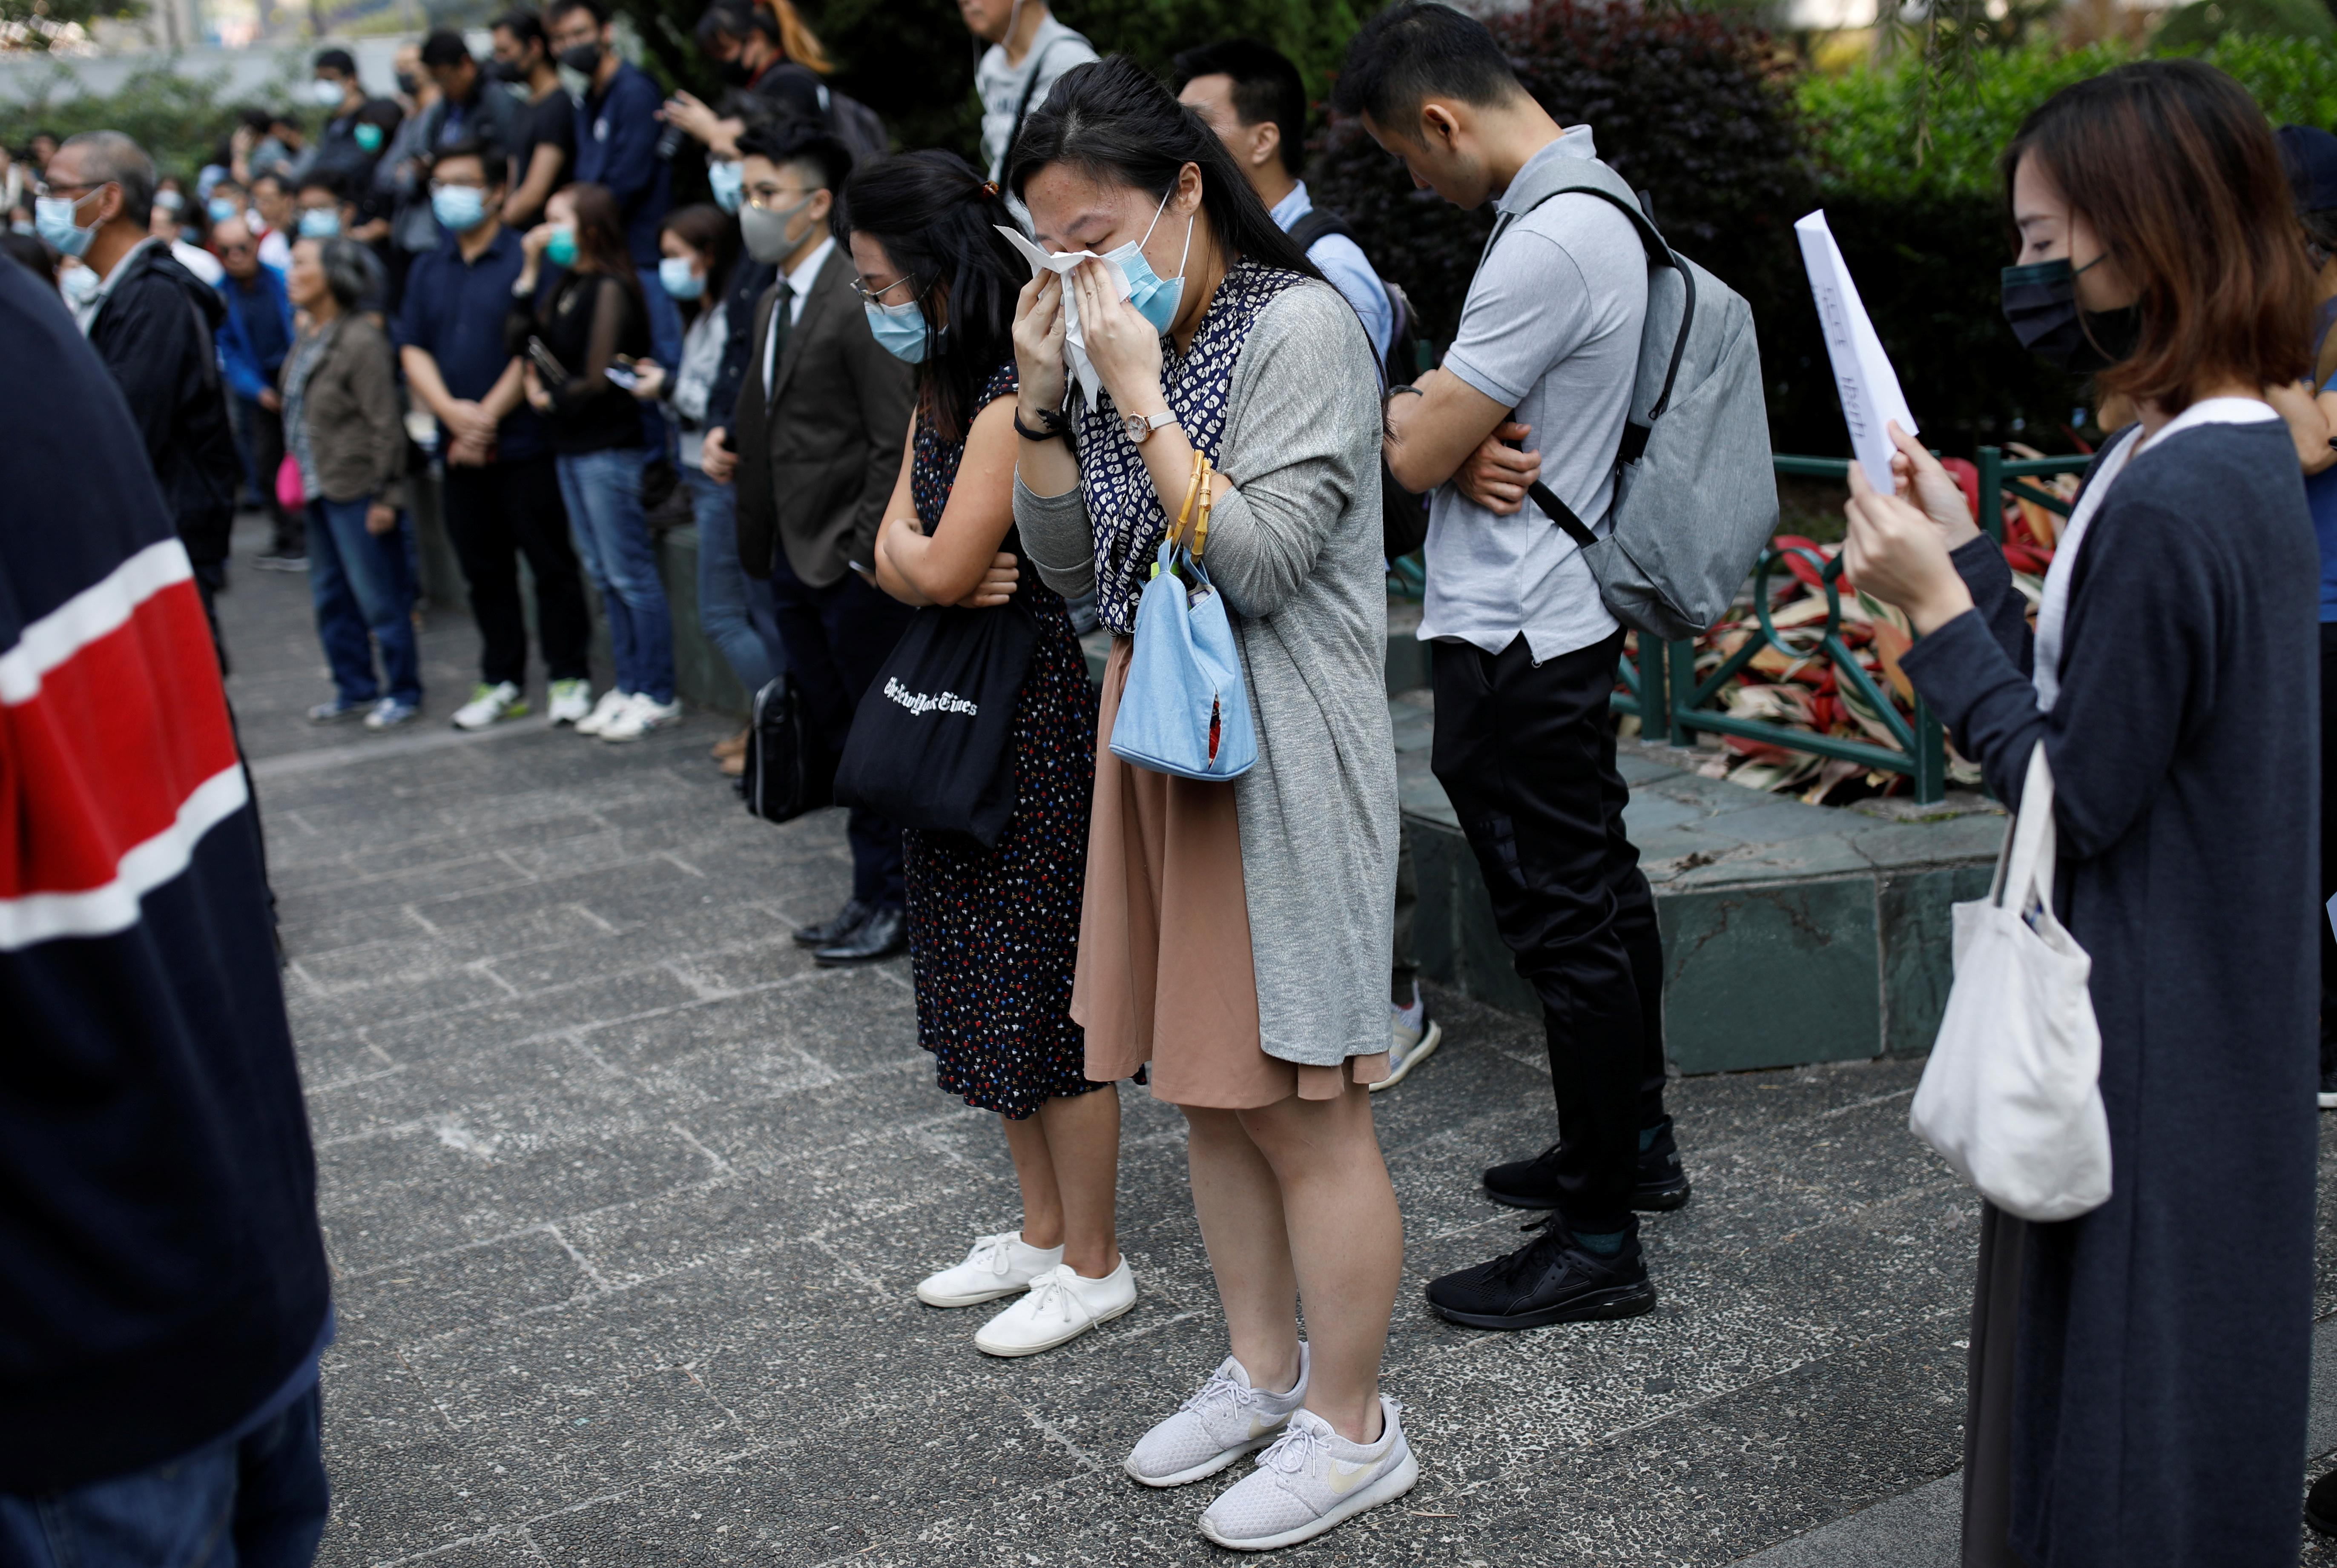 Death of Hong Kong student likely to add fuel to unrest